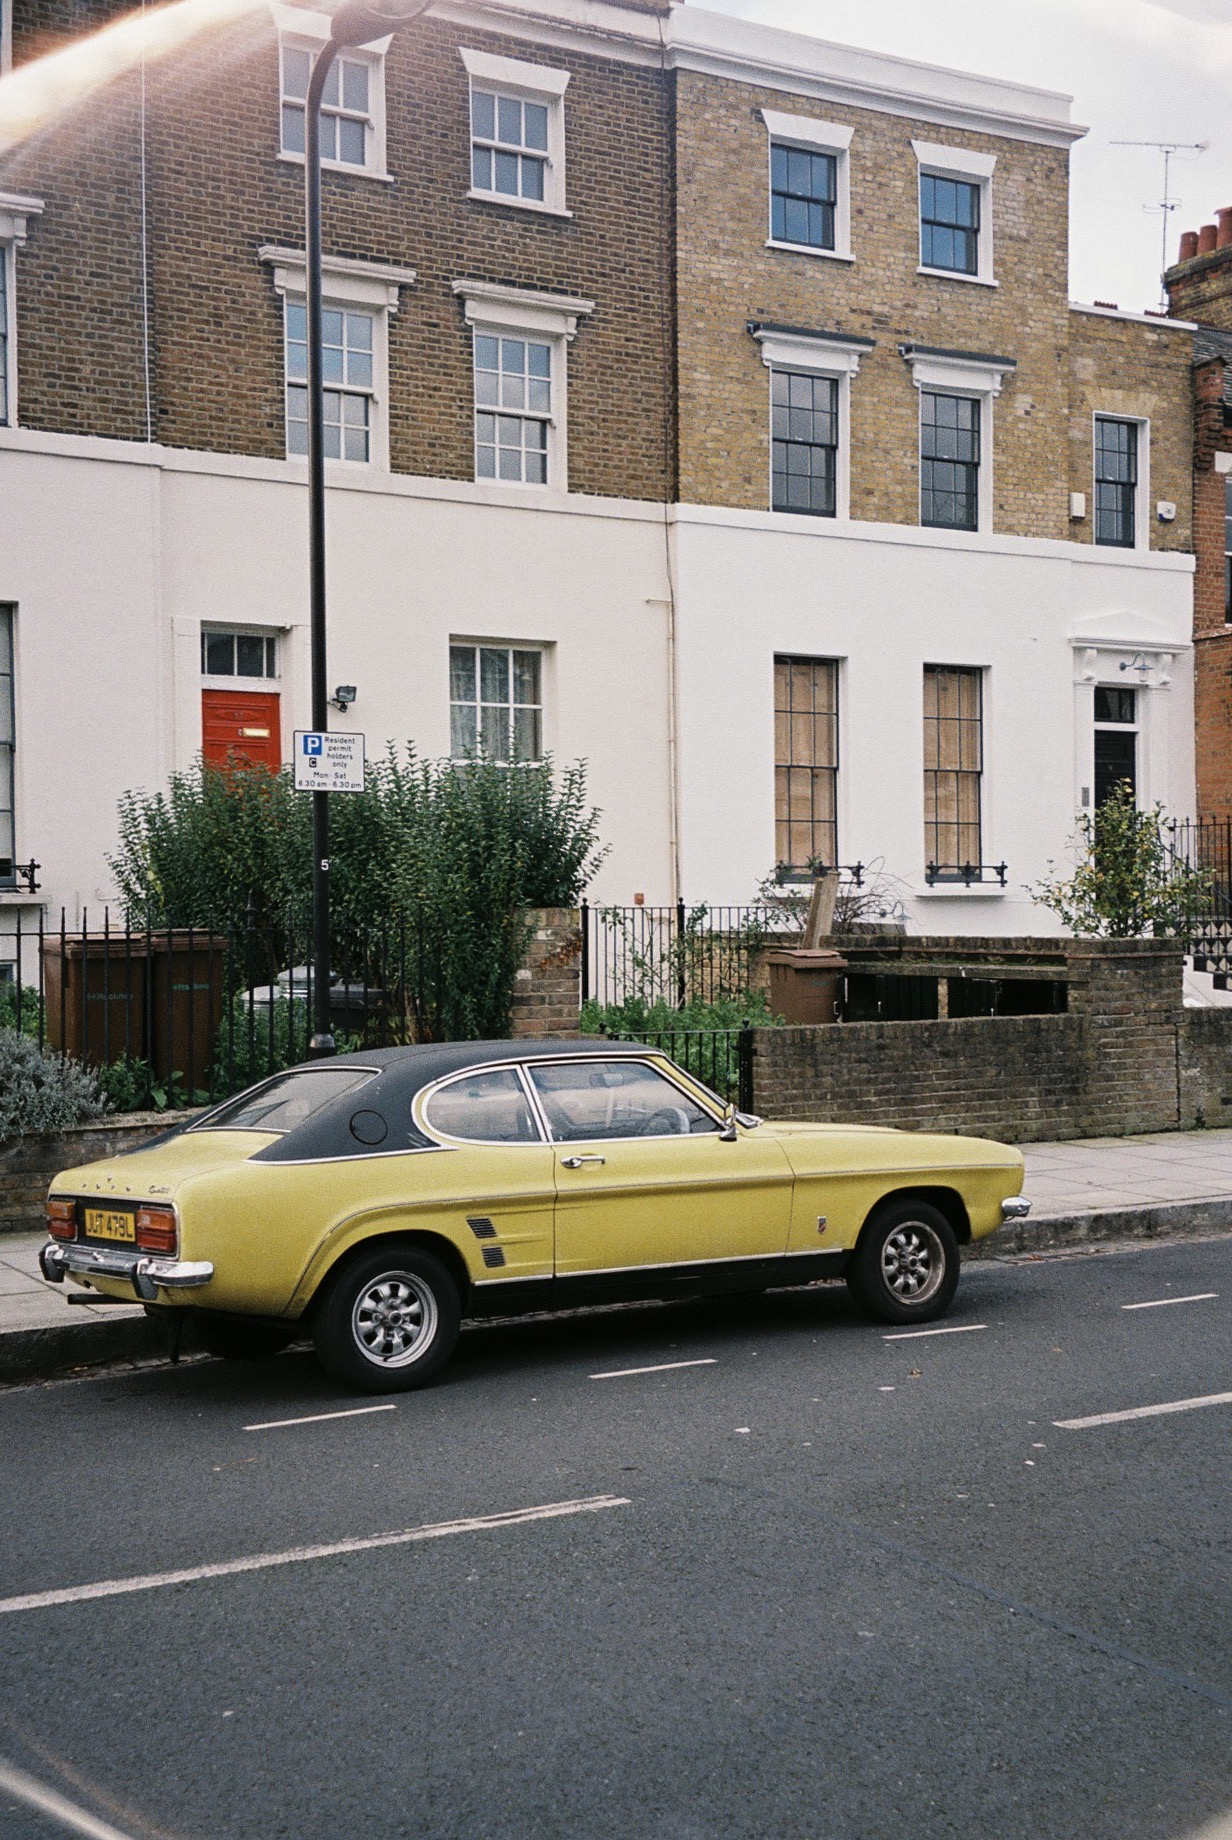 Yap, another a vintage car, this one I spotted in Hackney. /  Yap, mais um carro vintage, desta vem em Hackney.